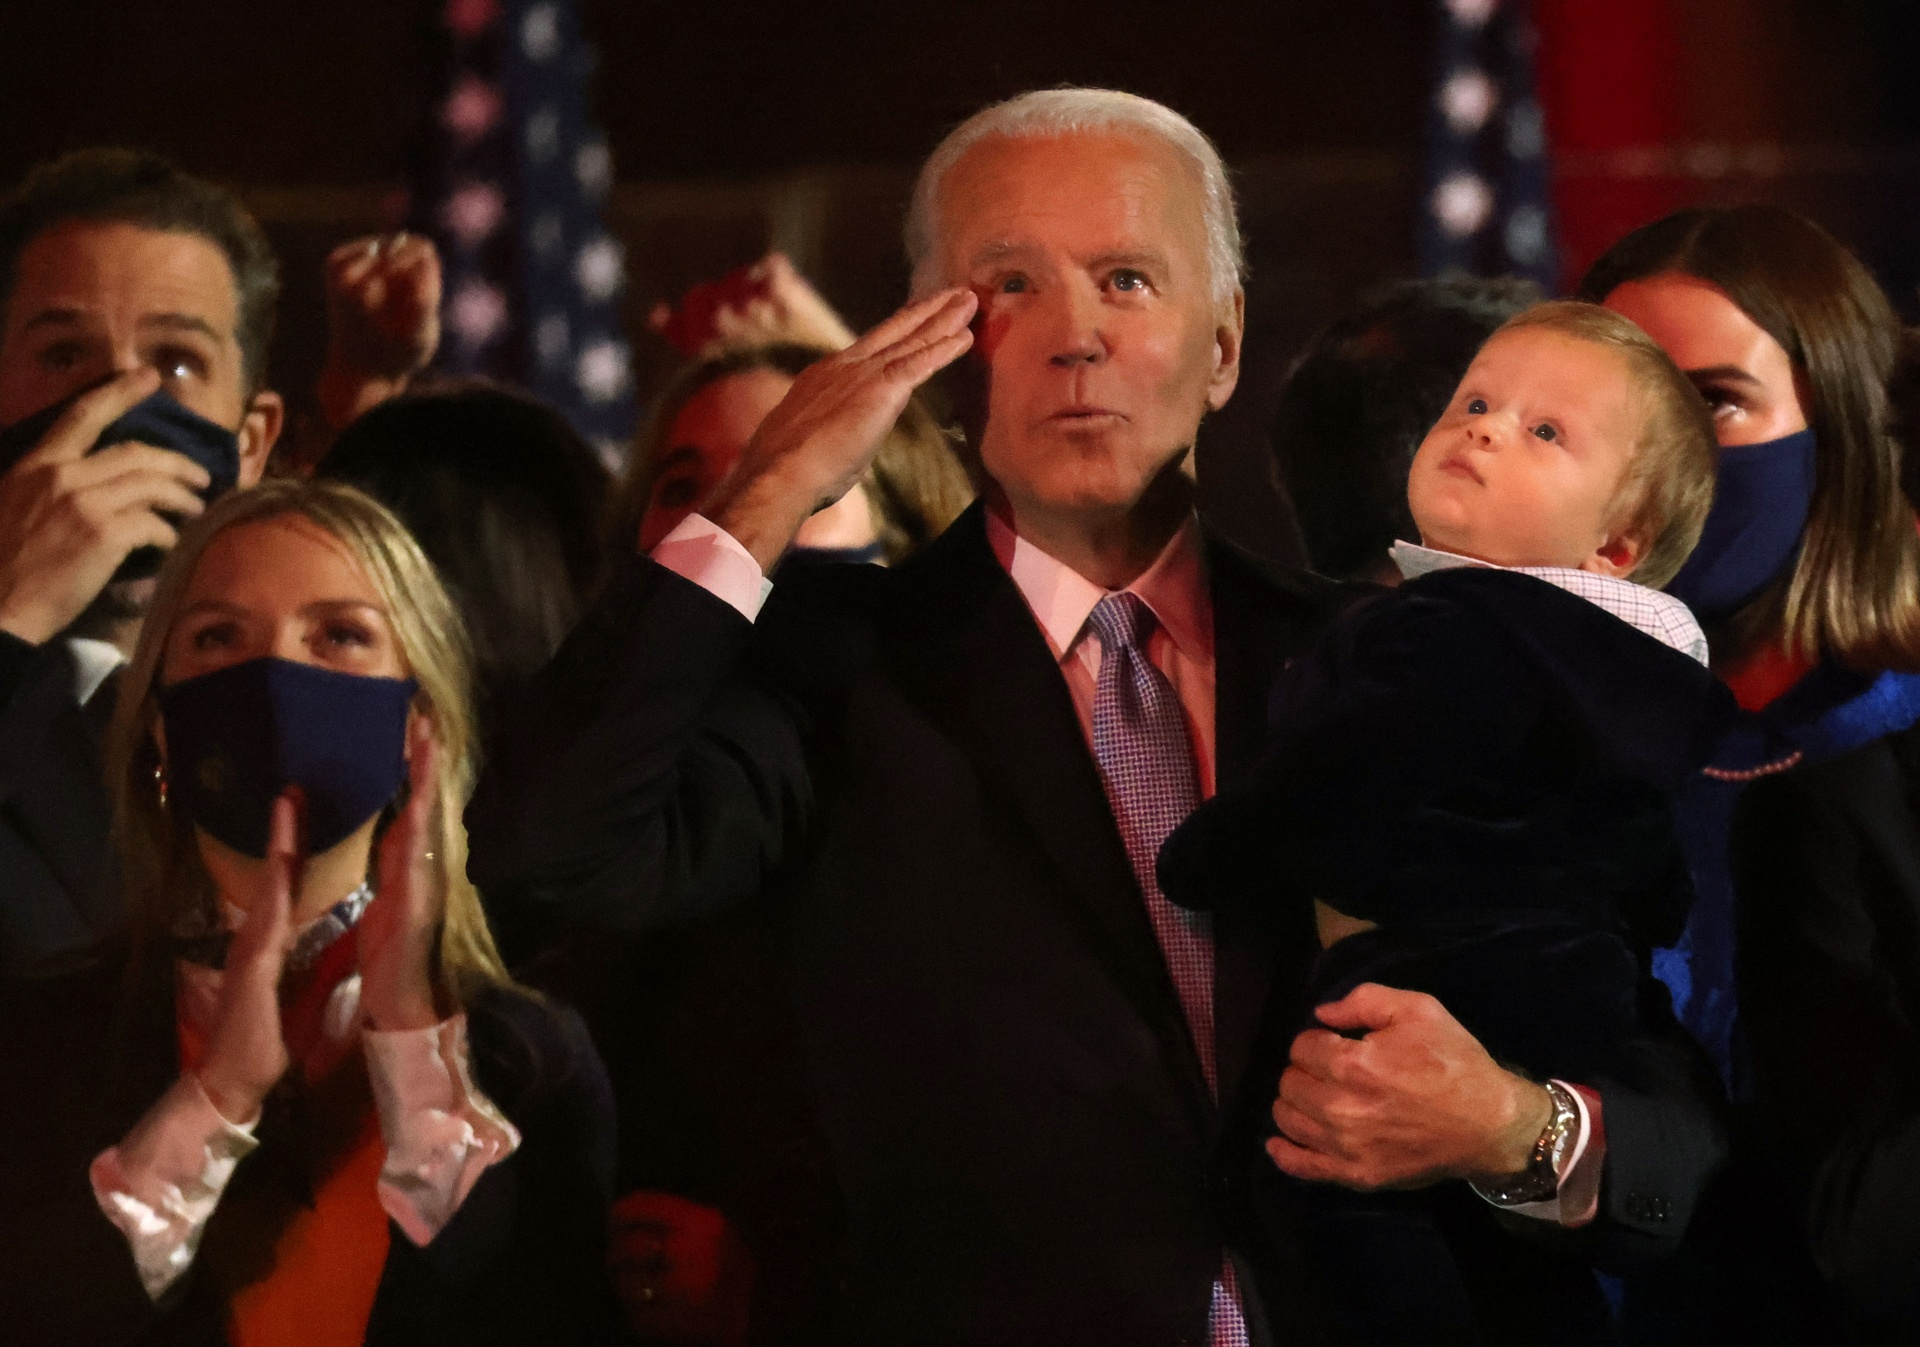 2020_11_08T025930Z_80542830_HP1EGB808B6MK_RTRMADP_3_USA_ELECTION_BIDEN_1_.jpg